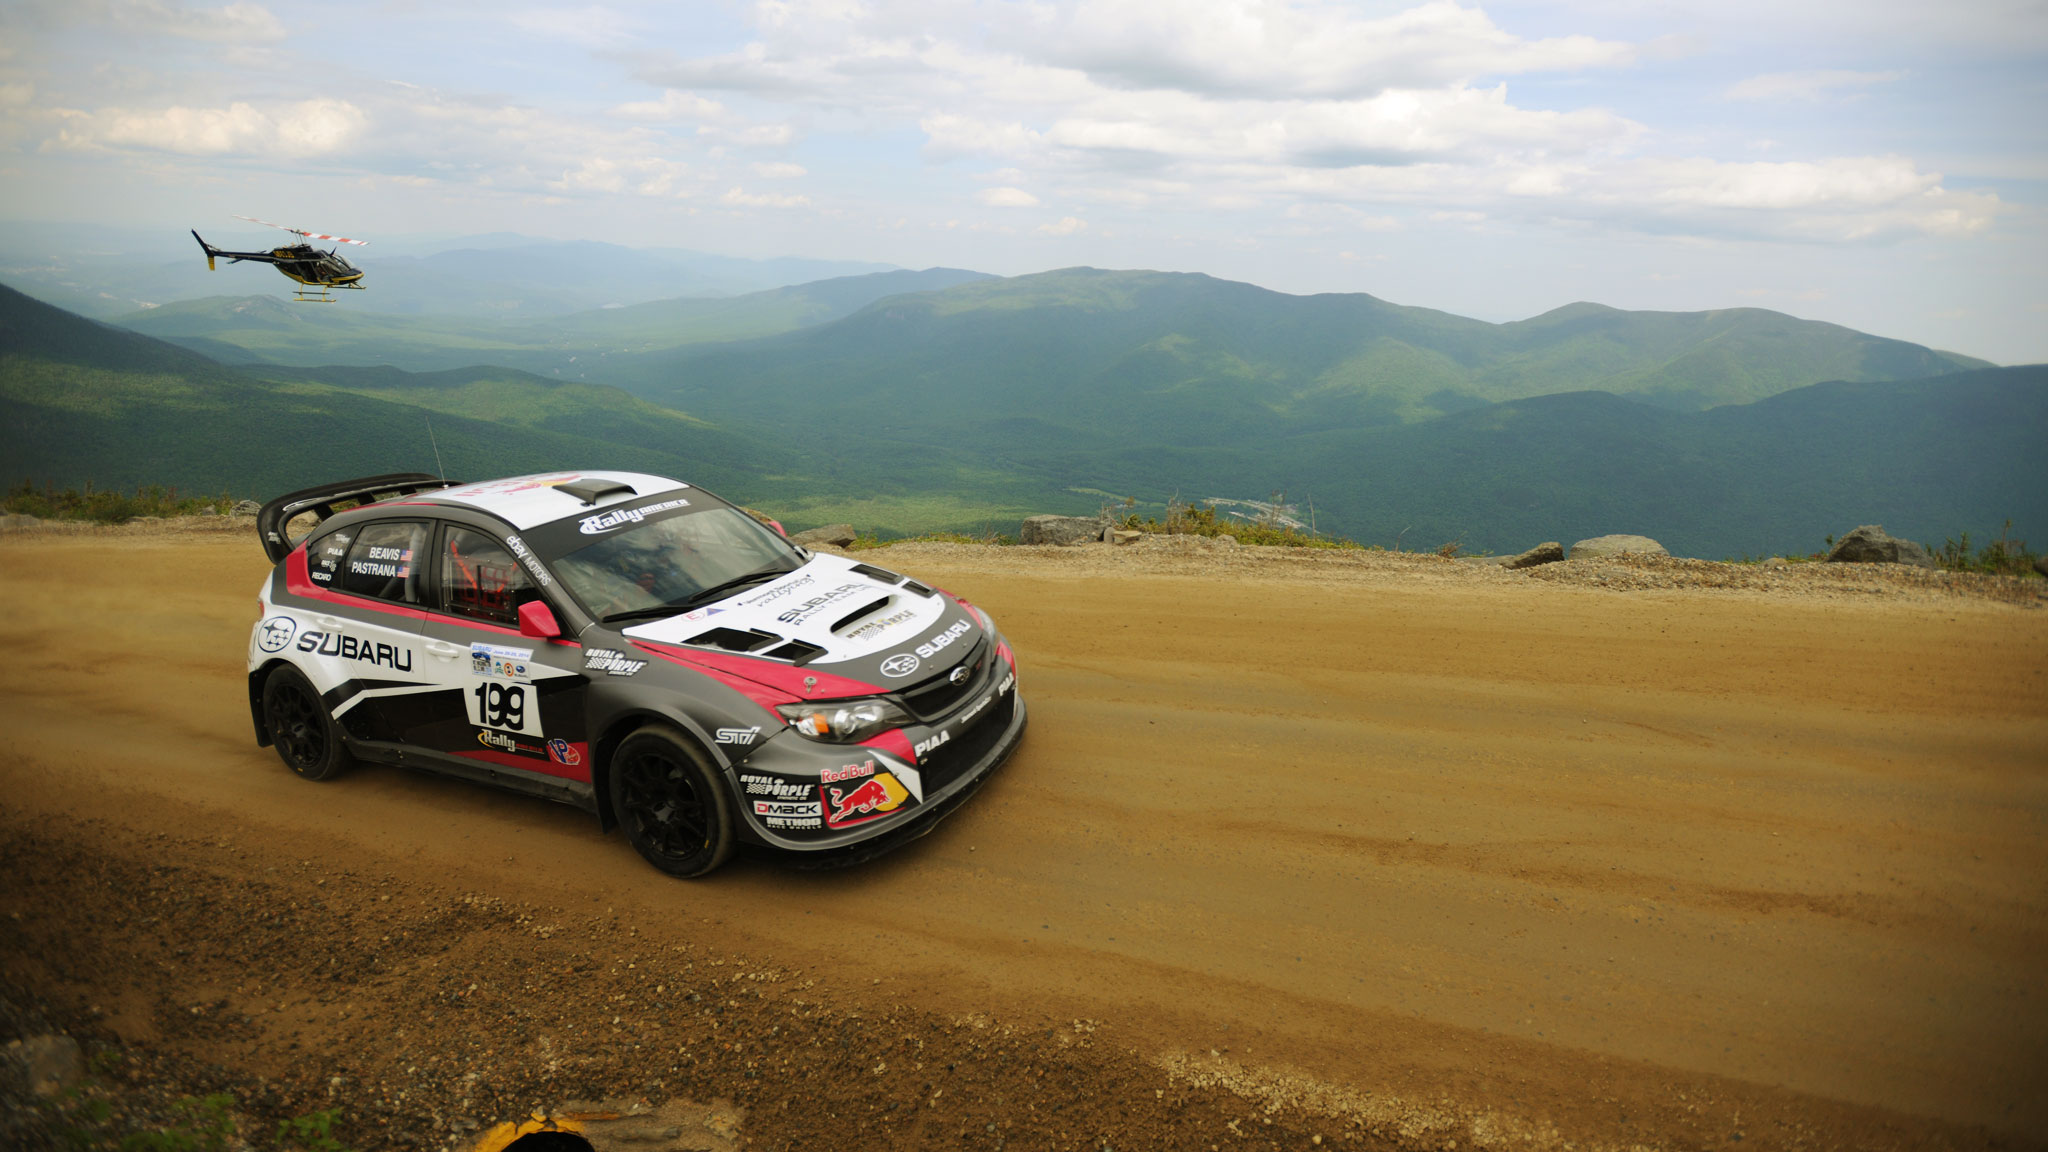 After a storied career racing just about everything on two and four wheels, Travis Pastrana is putting focus back into his Nitro Circus Live tour and contesting at least a few rally car races this year, including X Games Austin and Rally America's Mount Washington Hillclimb in late June, where he finished third.